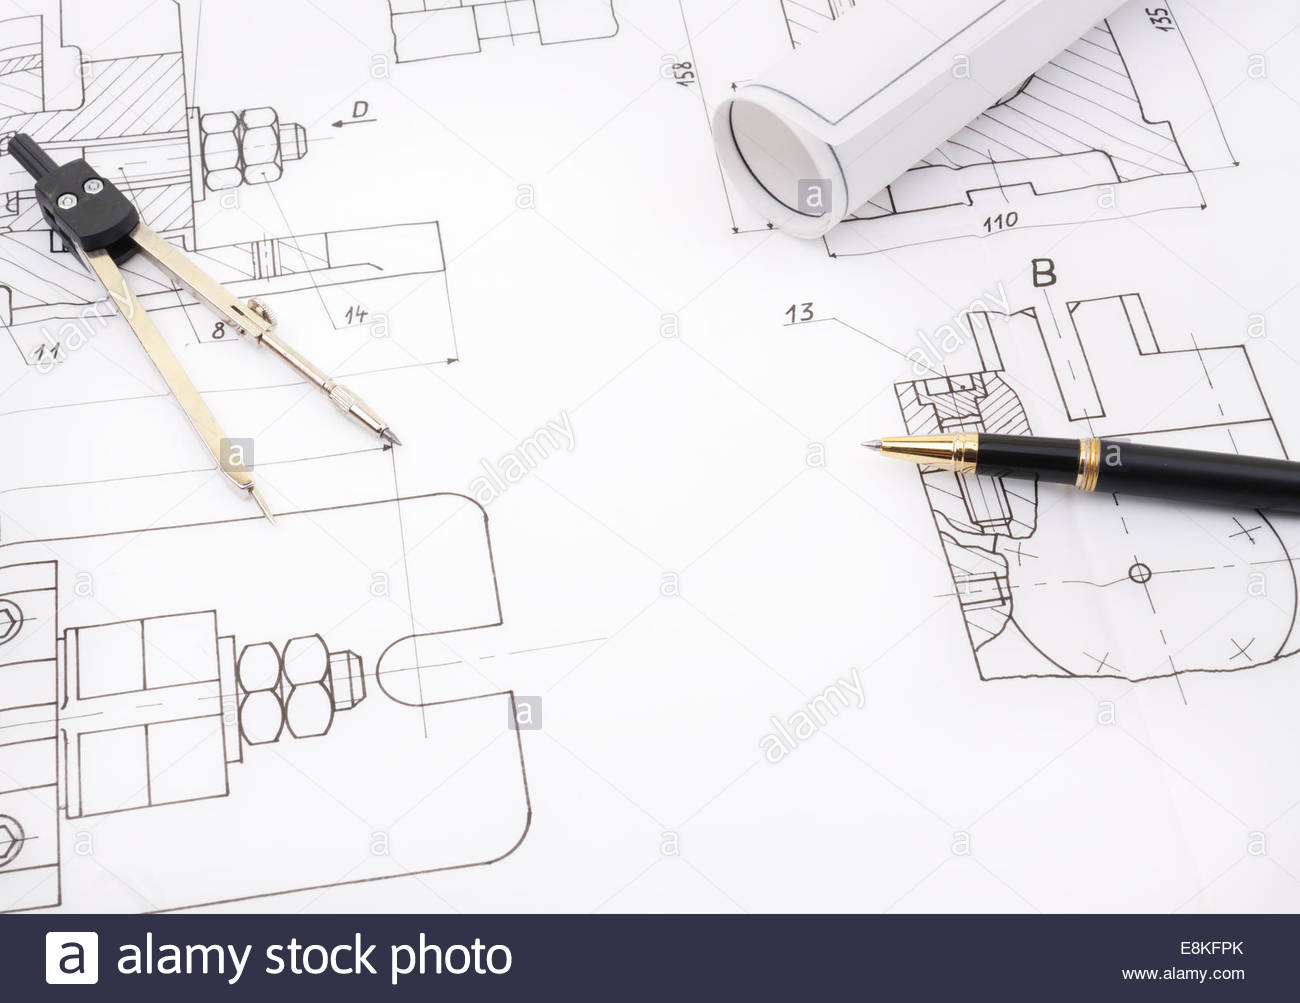 1300x1003 Blueprint Drawing Project Of Industry Detail Like Bolt Screw